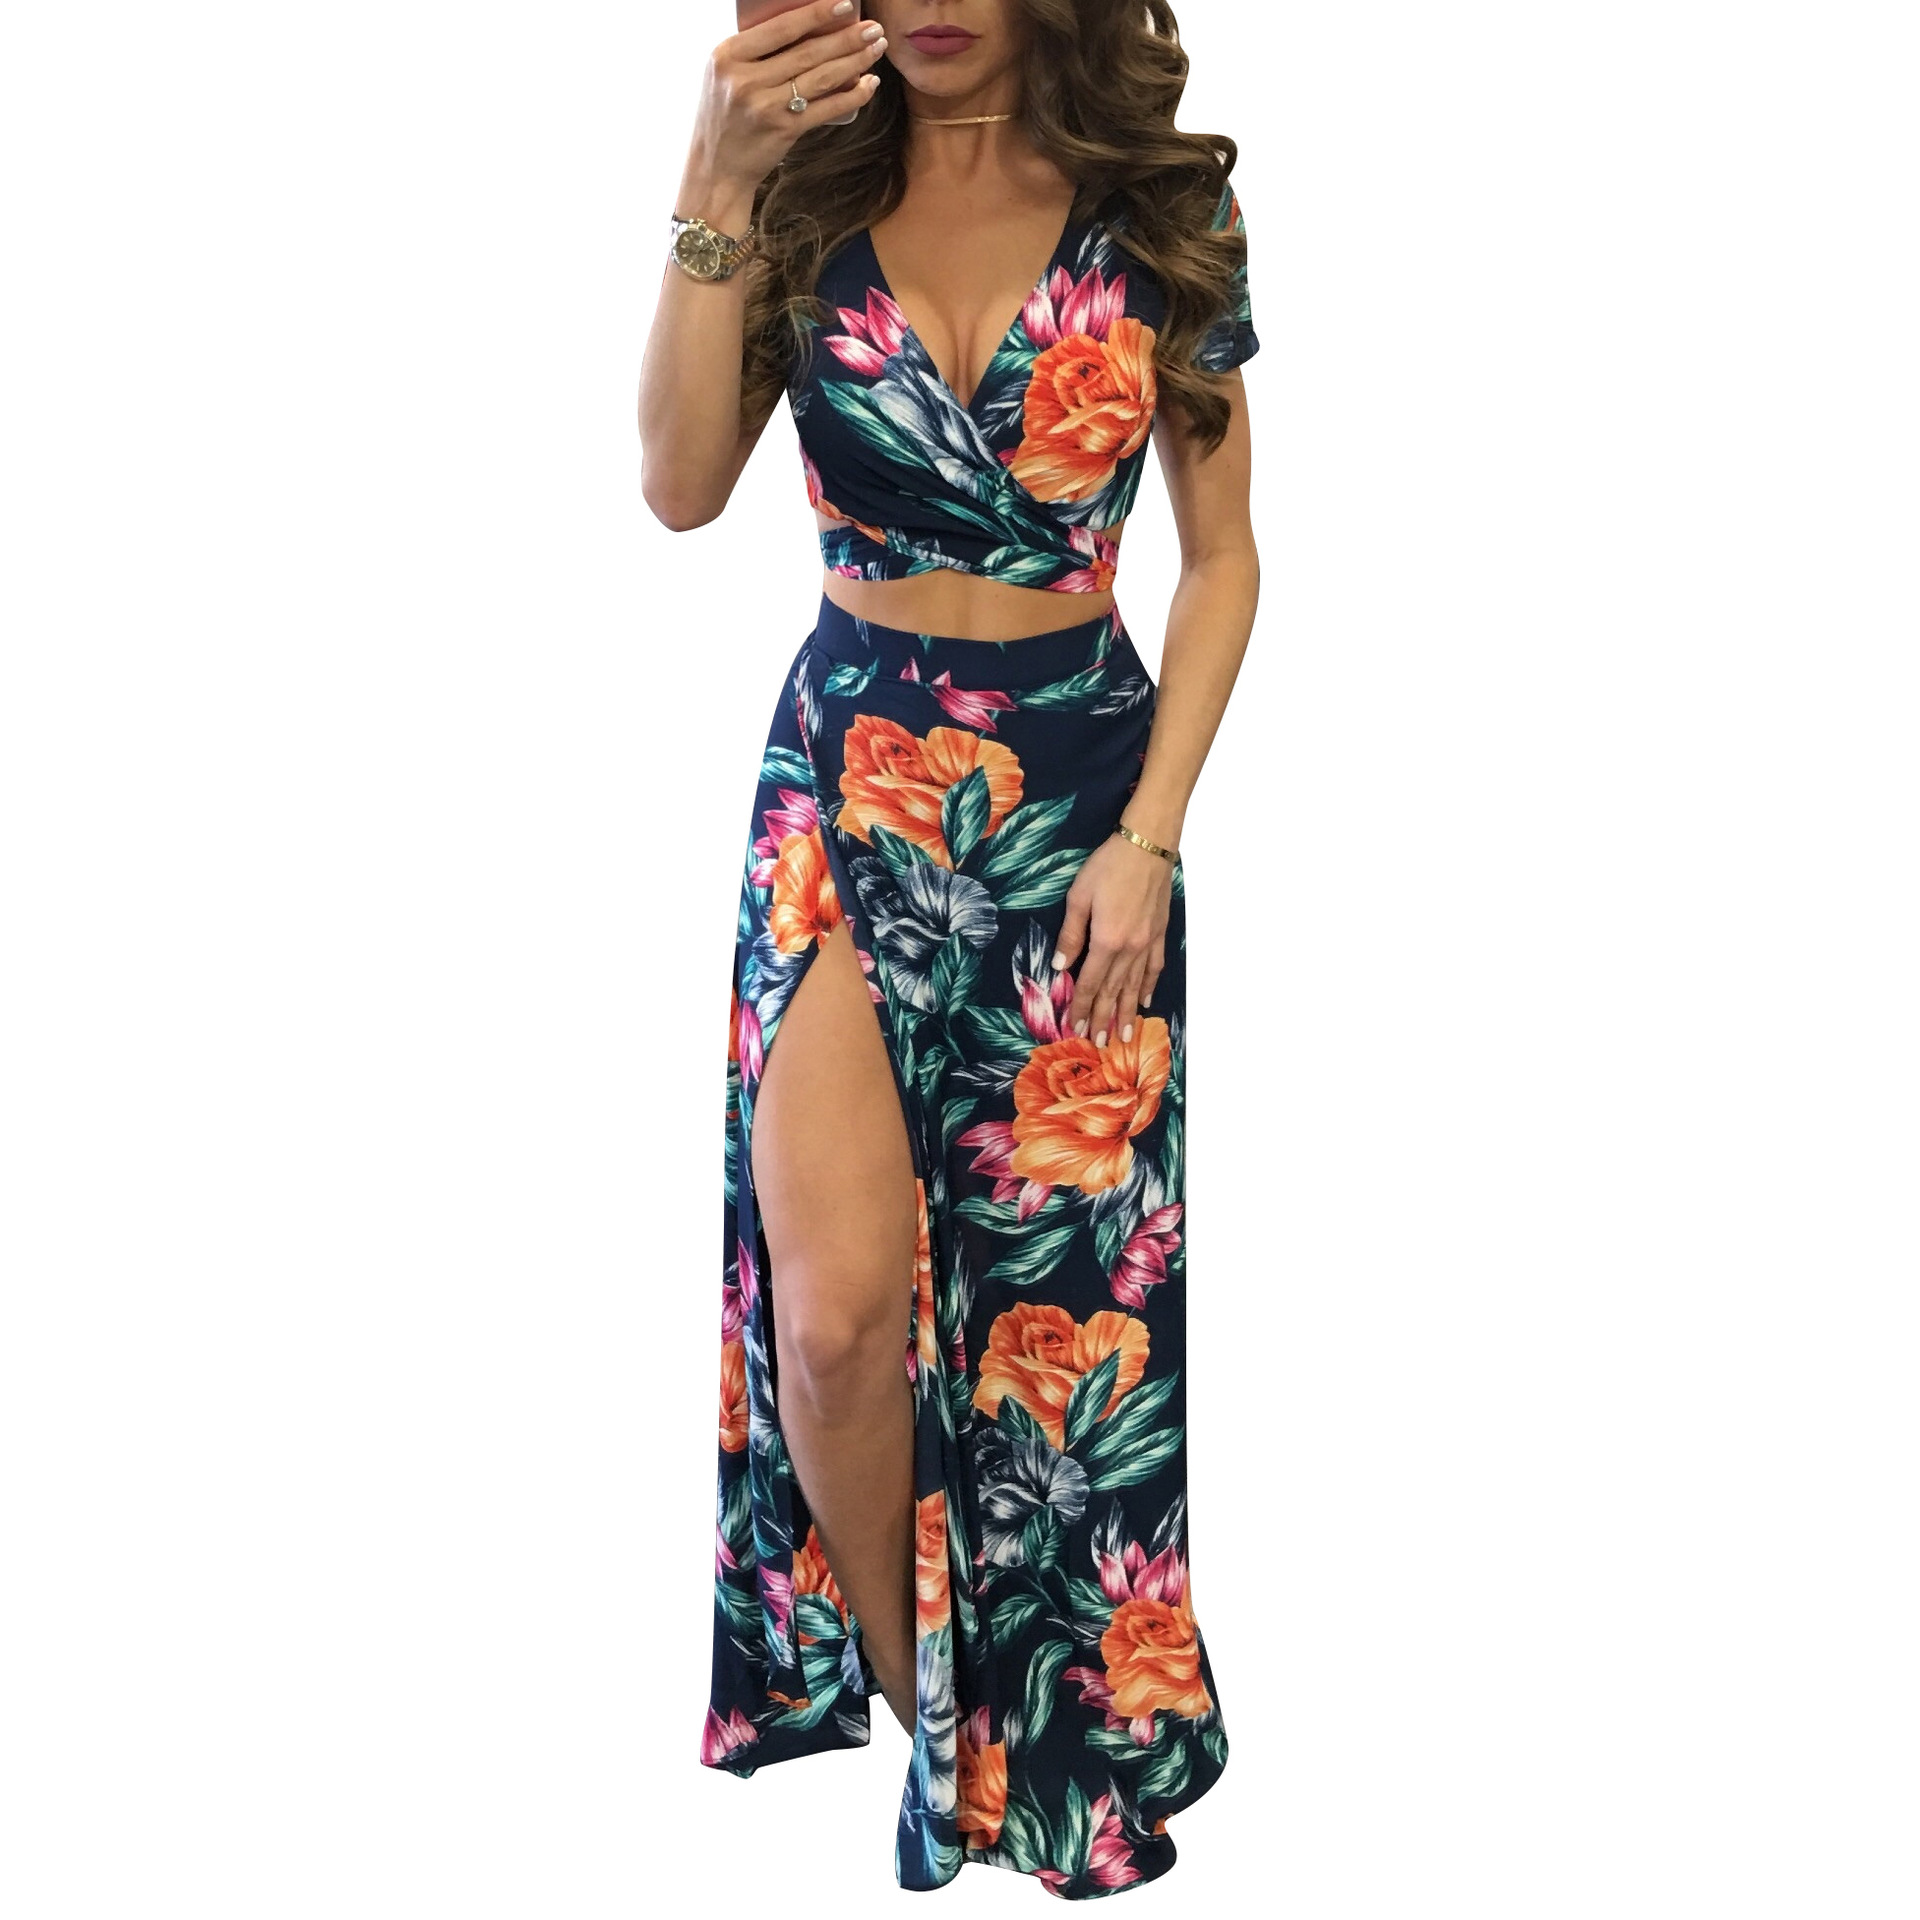 Super 2017 Fashion Set Women Two Piece Outfits Crop Top and Skirt Set  PG69